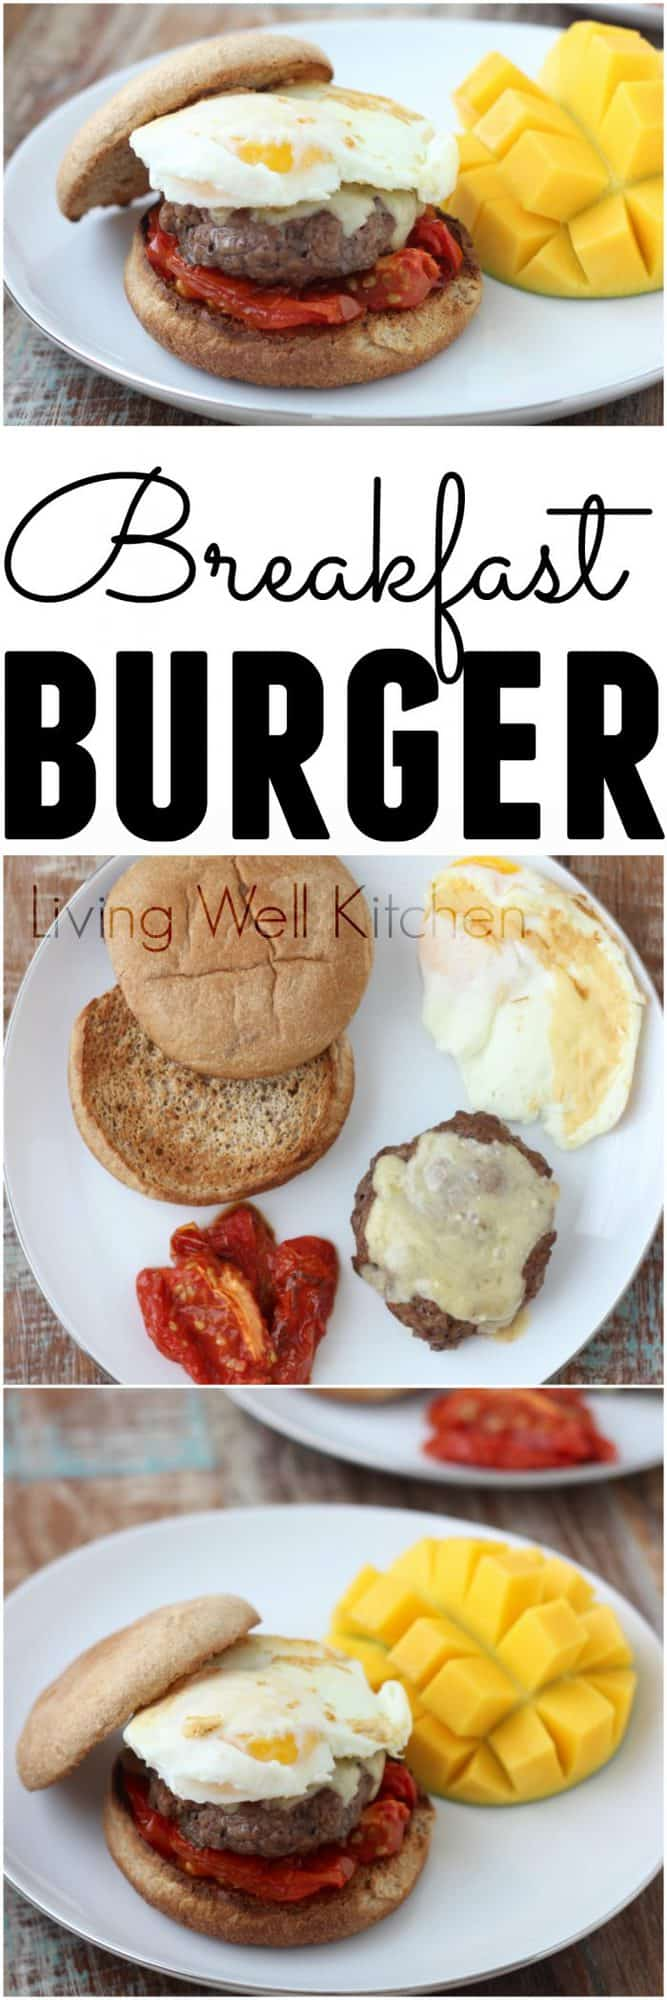 Start your day the right way with a Breakfast Burger full of protein and fiber to keep you satisfied all morning. (sponsored post)